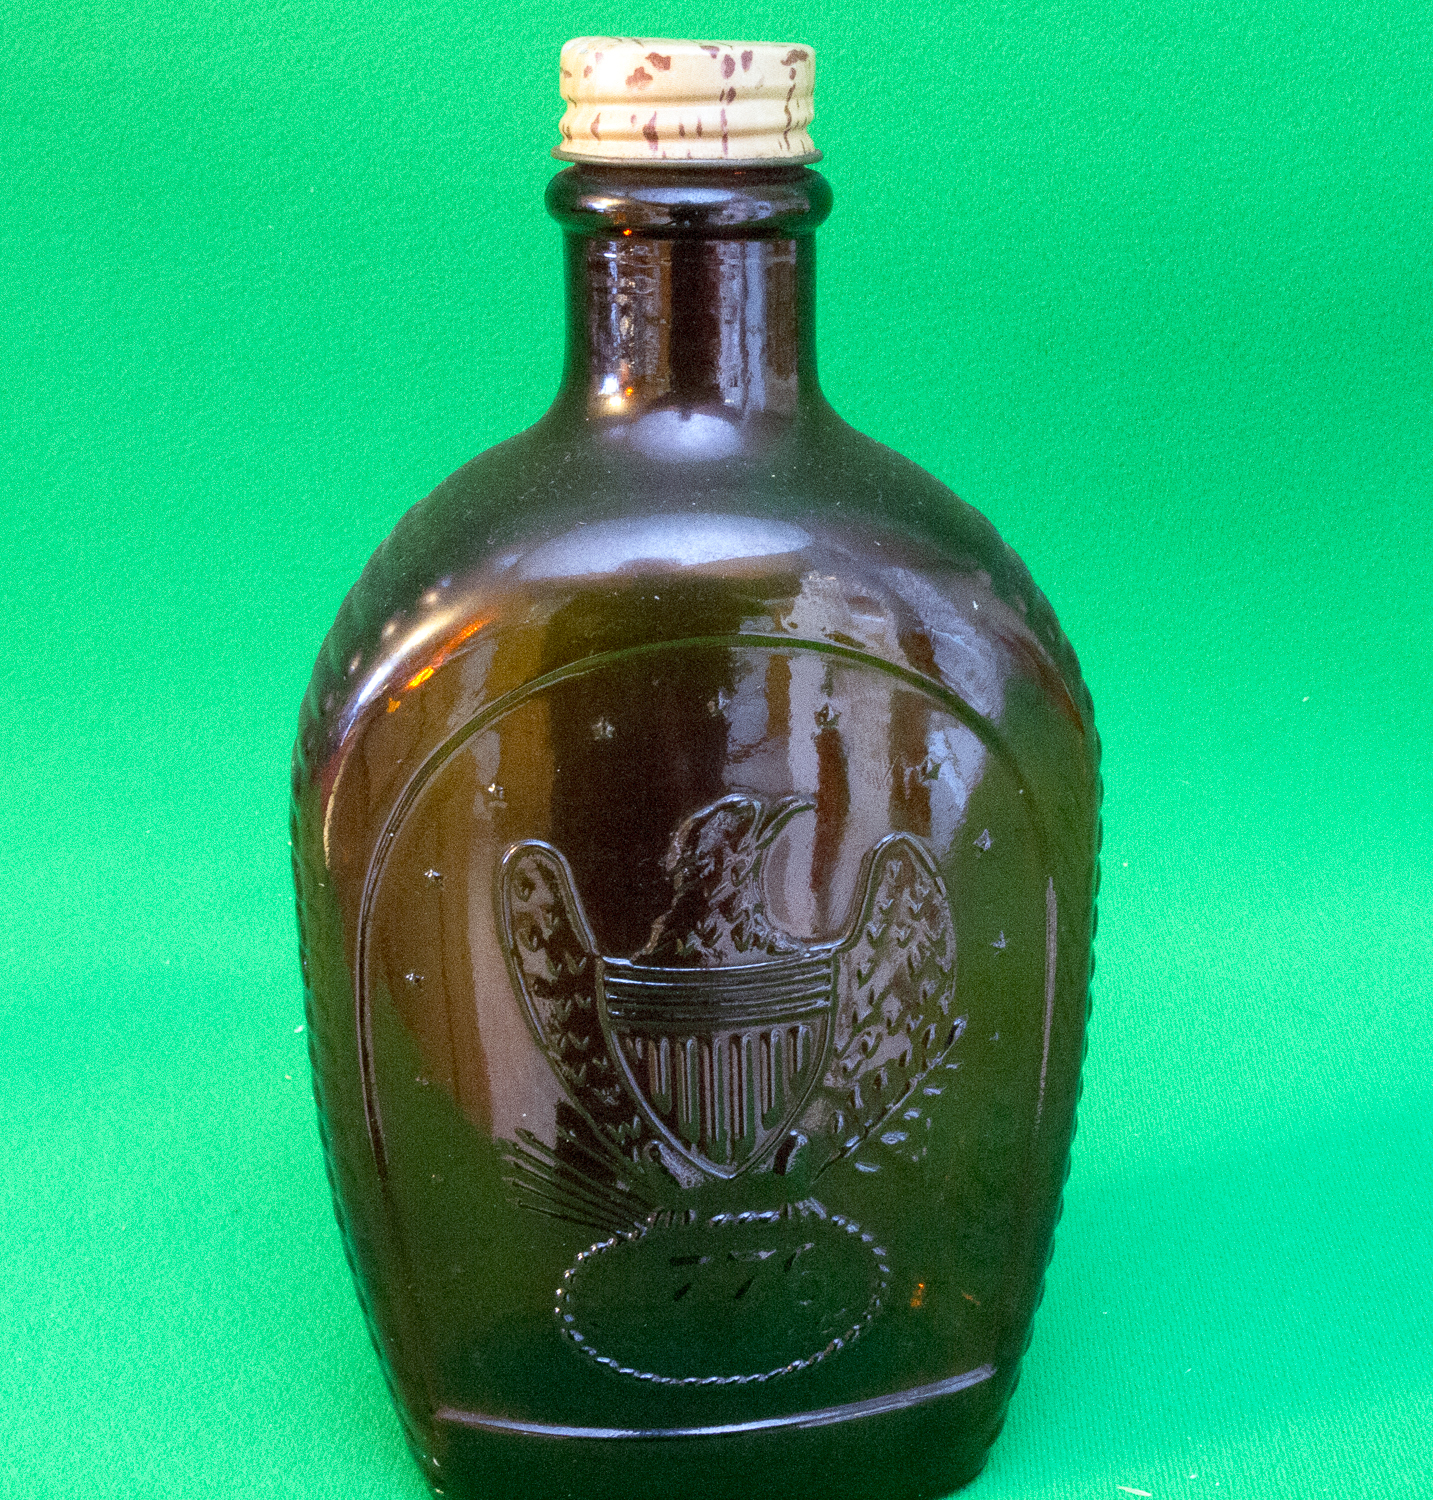 Wonderful image of Log Cabin Syrup Bicentennial Brown Bottle 1776 And Eagle Design  with #09C282 color and 1433x1500 pixels